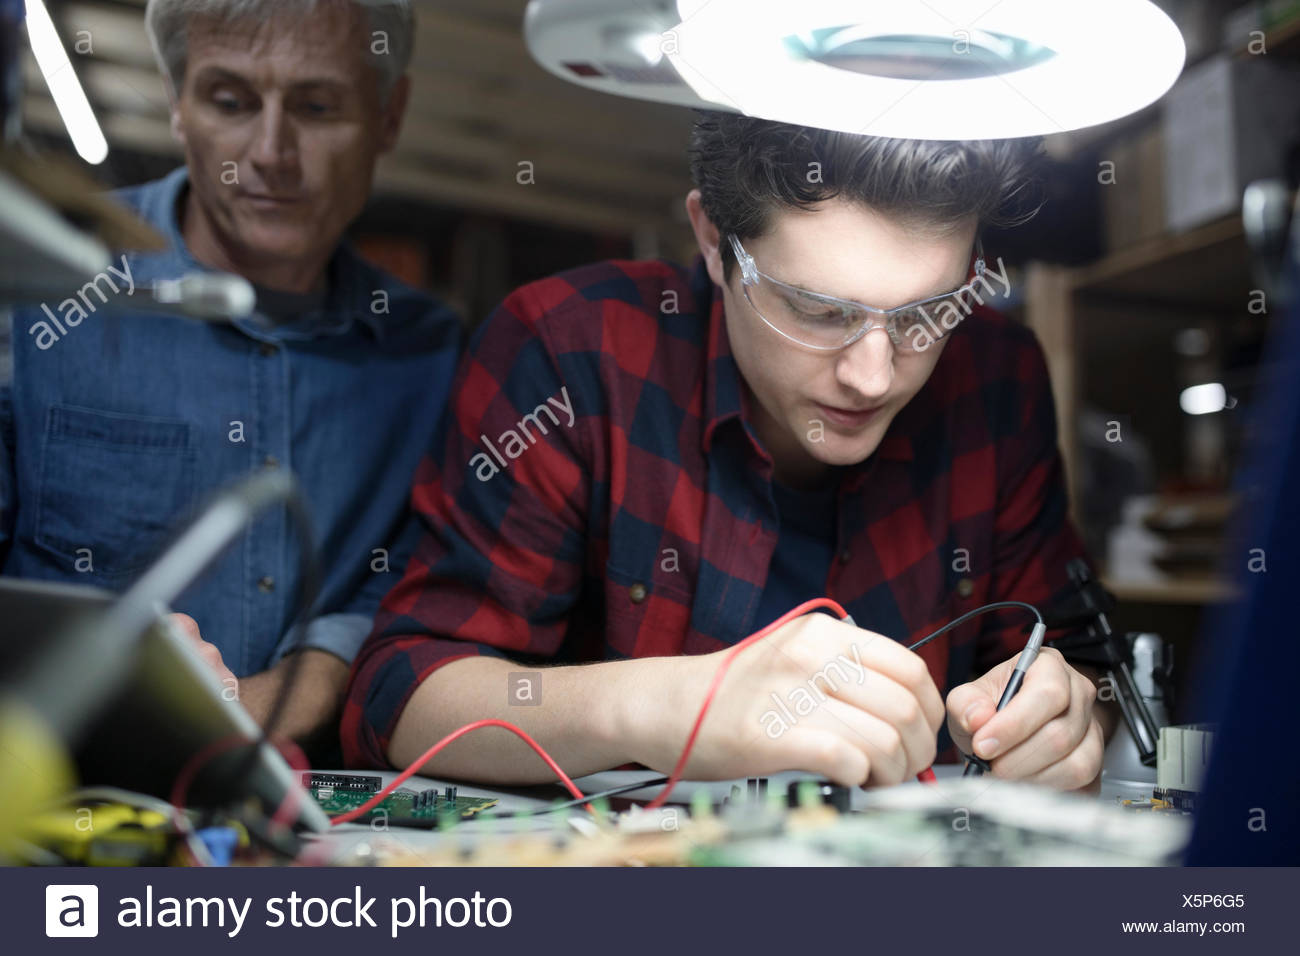 Male engineers using soldering iron on electronics circuit board in workshop - Stock Image